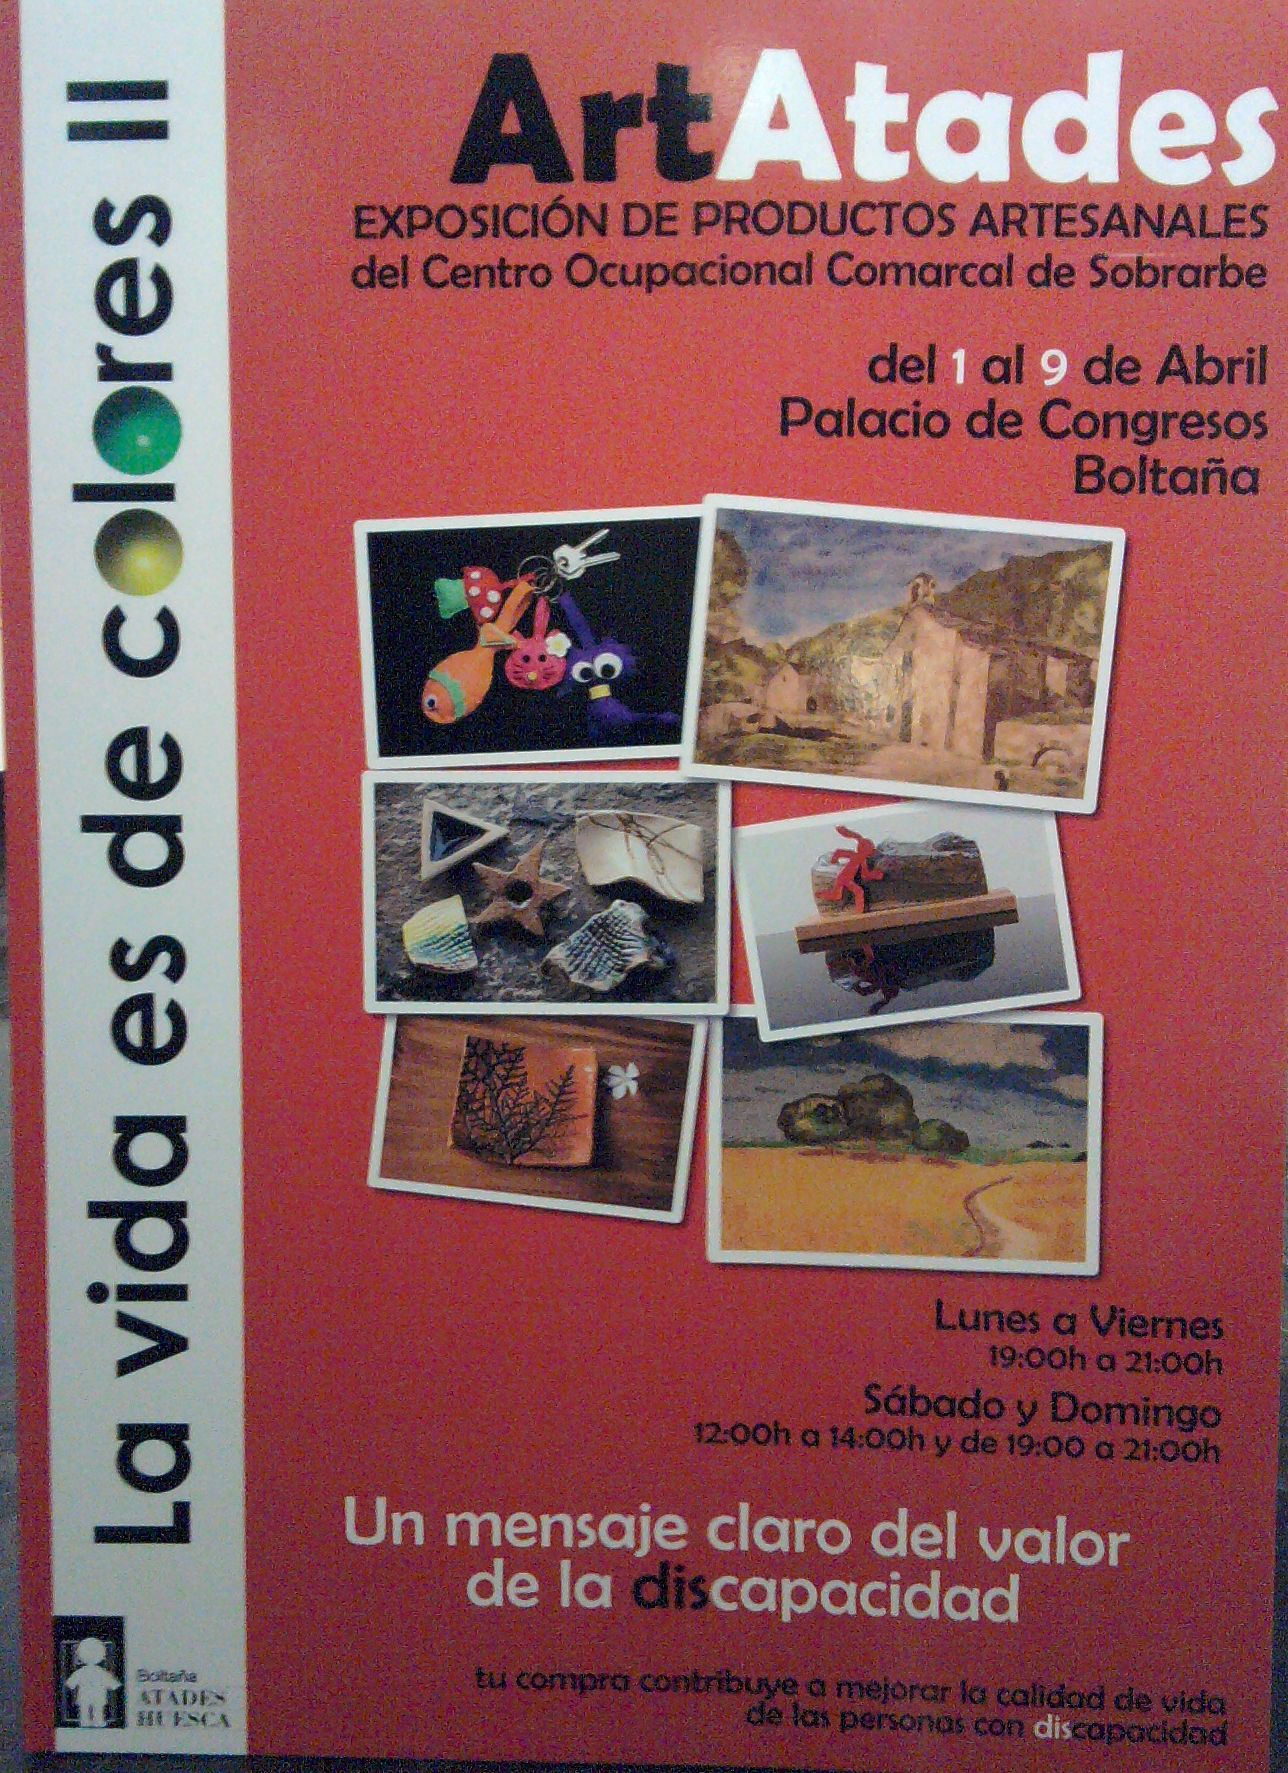 http://sobrarbenses.files.wordpress.com/2011/04/atades1.jpg